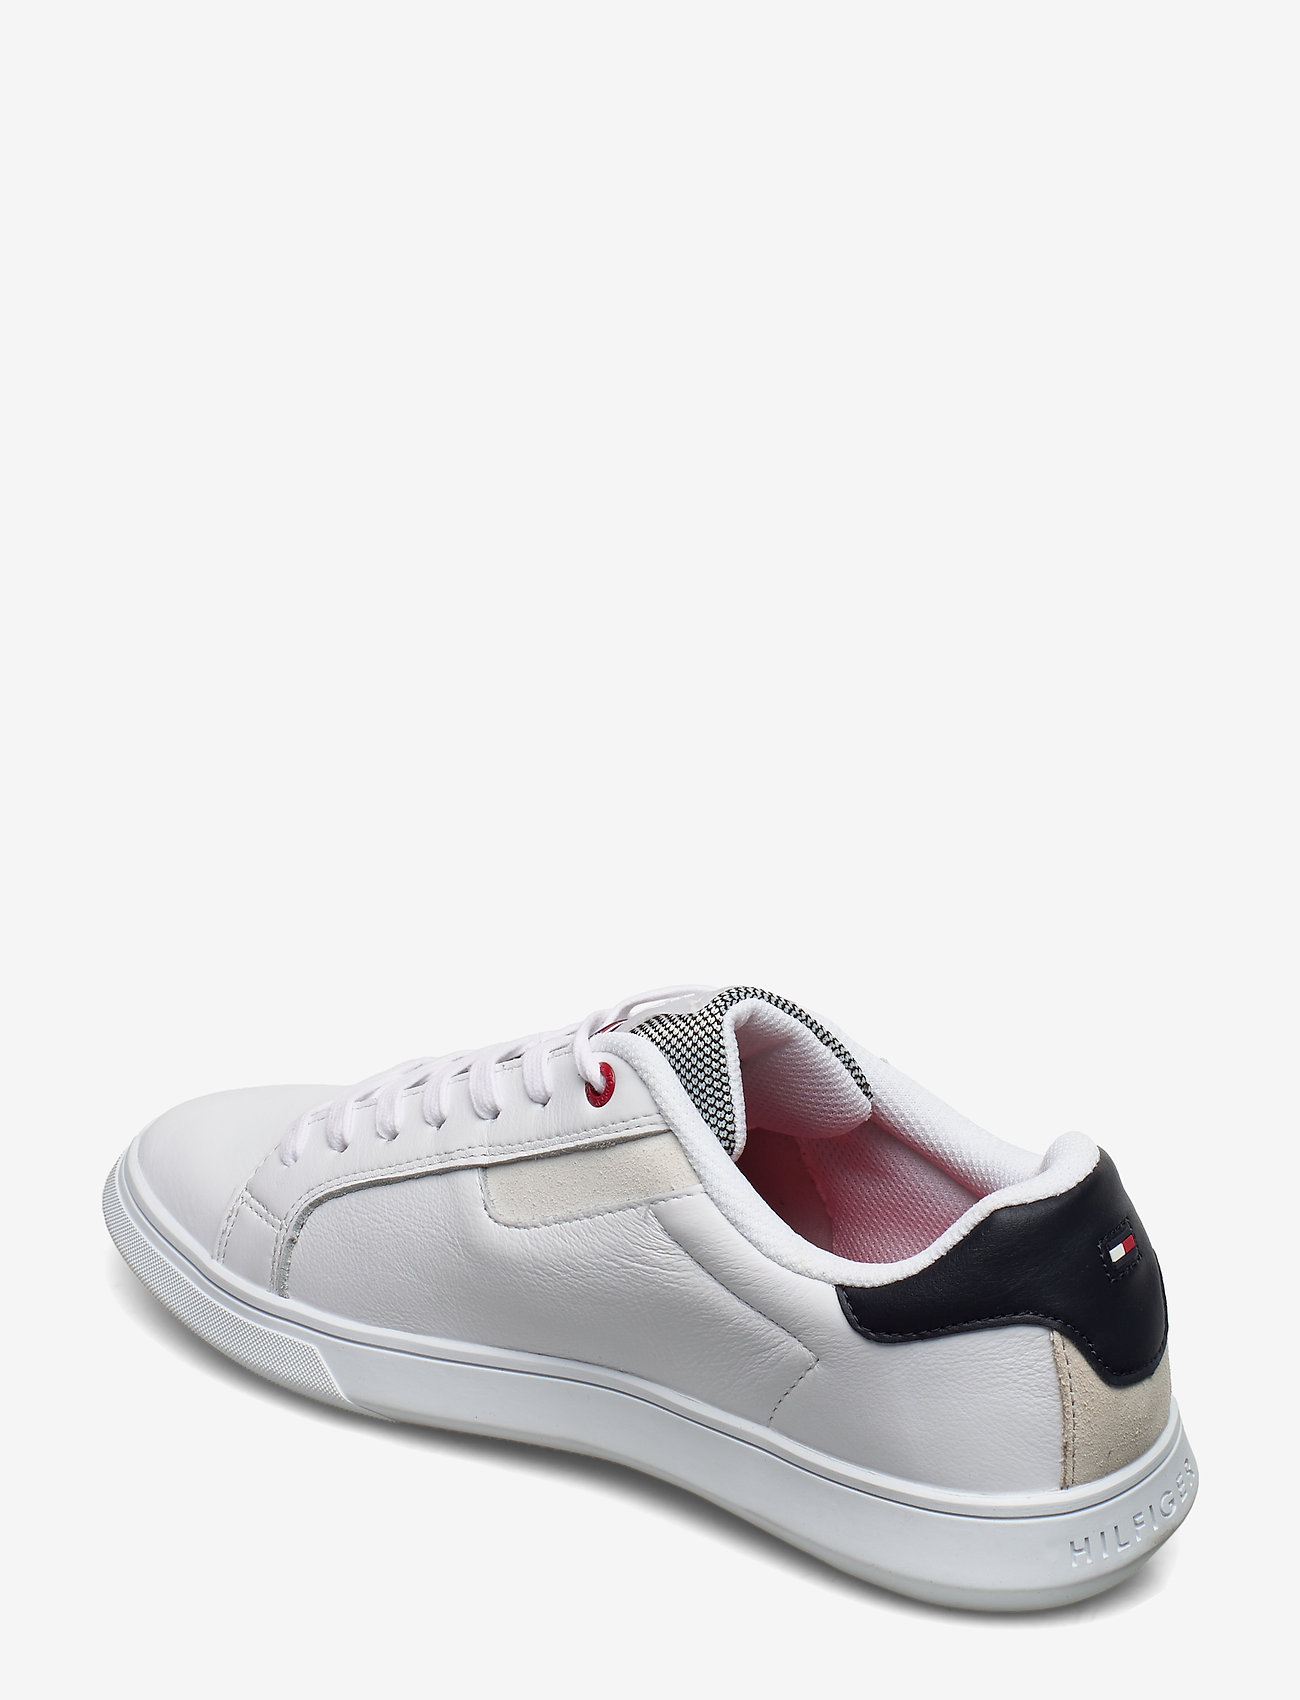 Essential Leather Cupsole (White) - Tommy Hilfiger